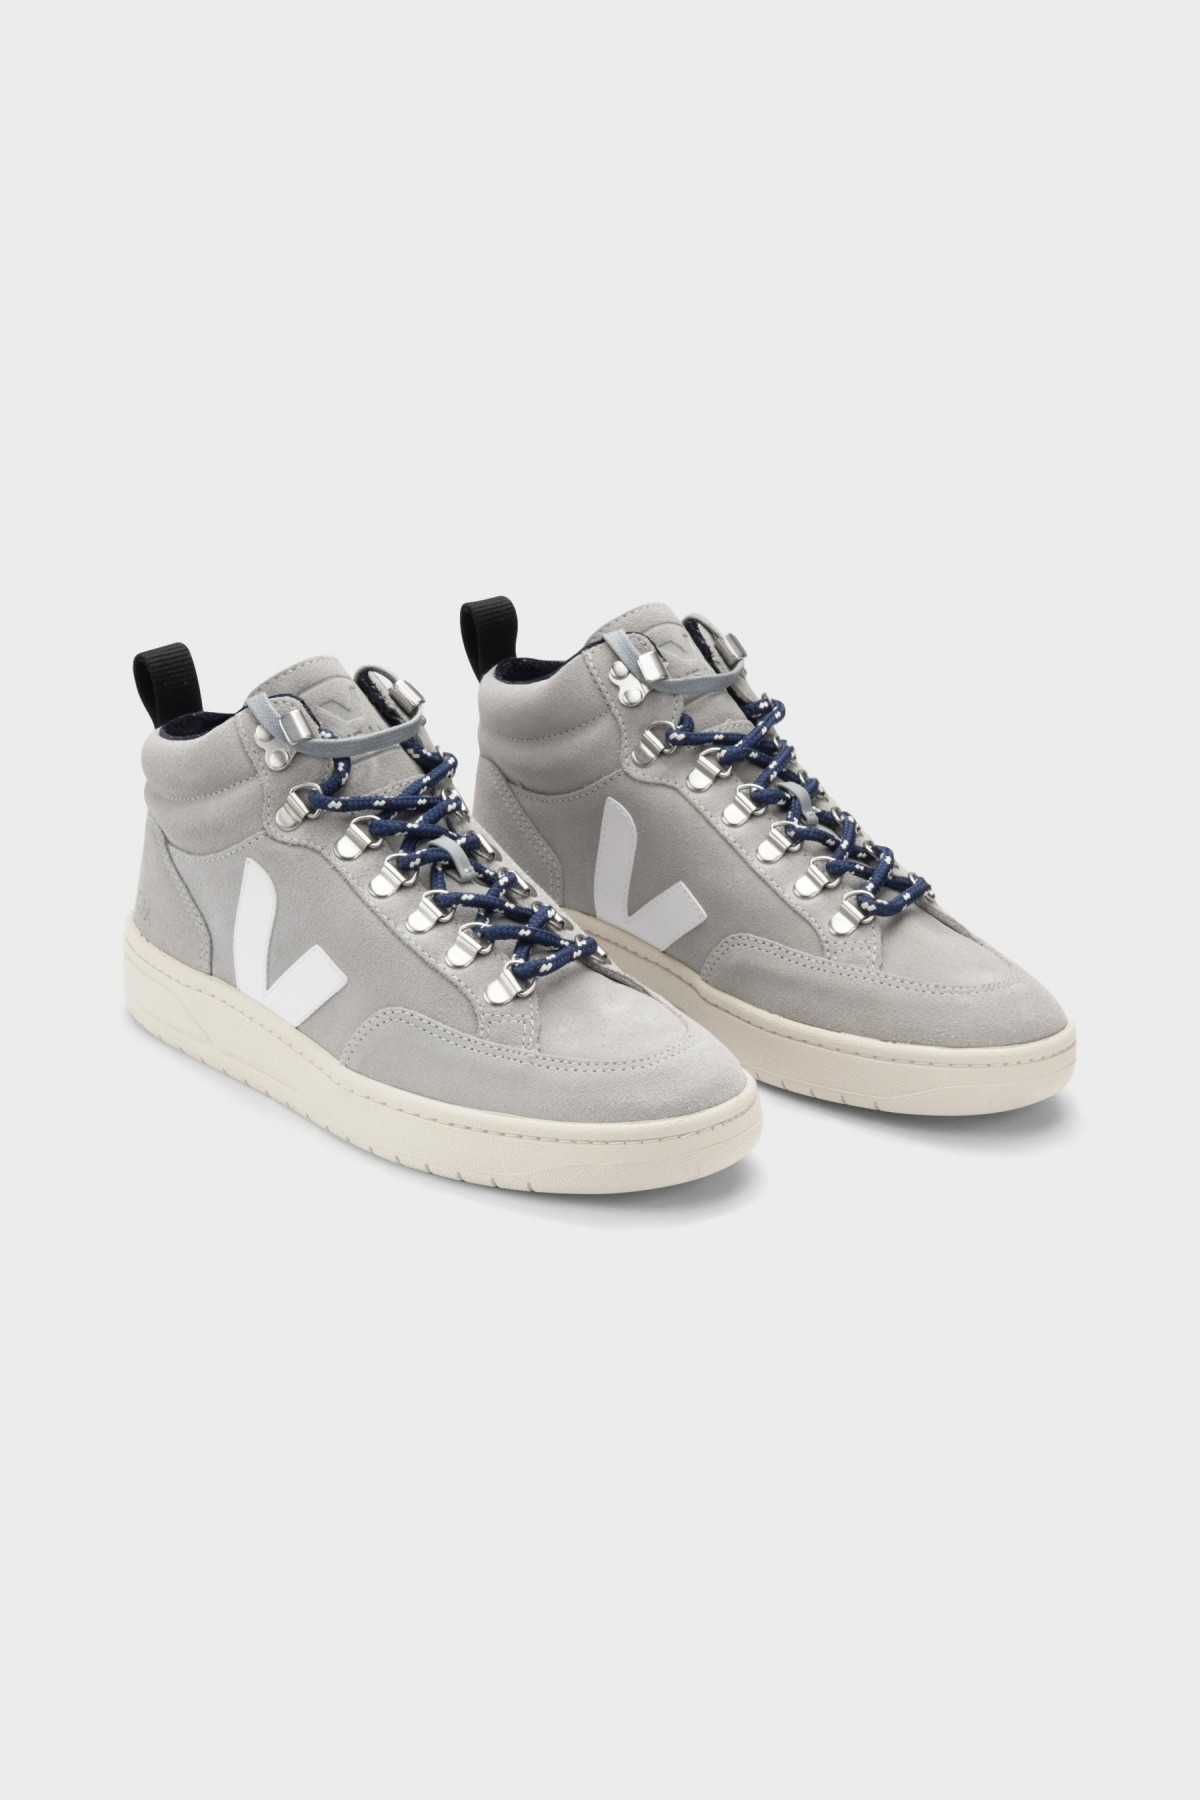 Veja Roraima Suede in Oxford Grey White